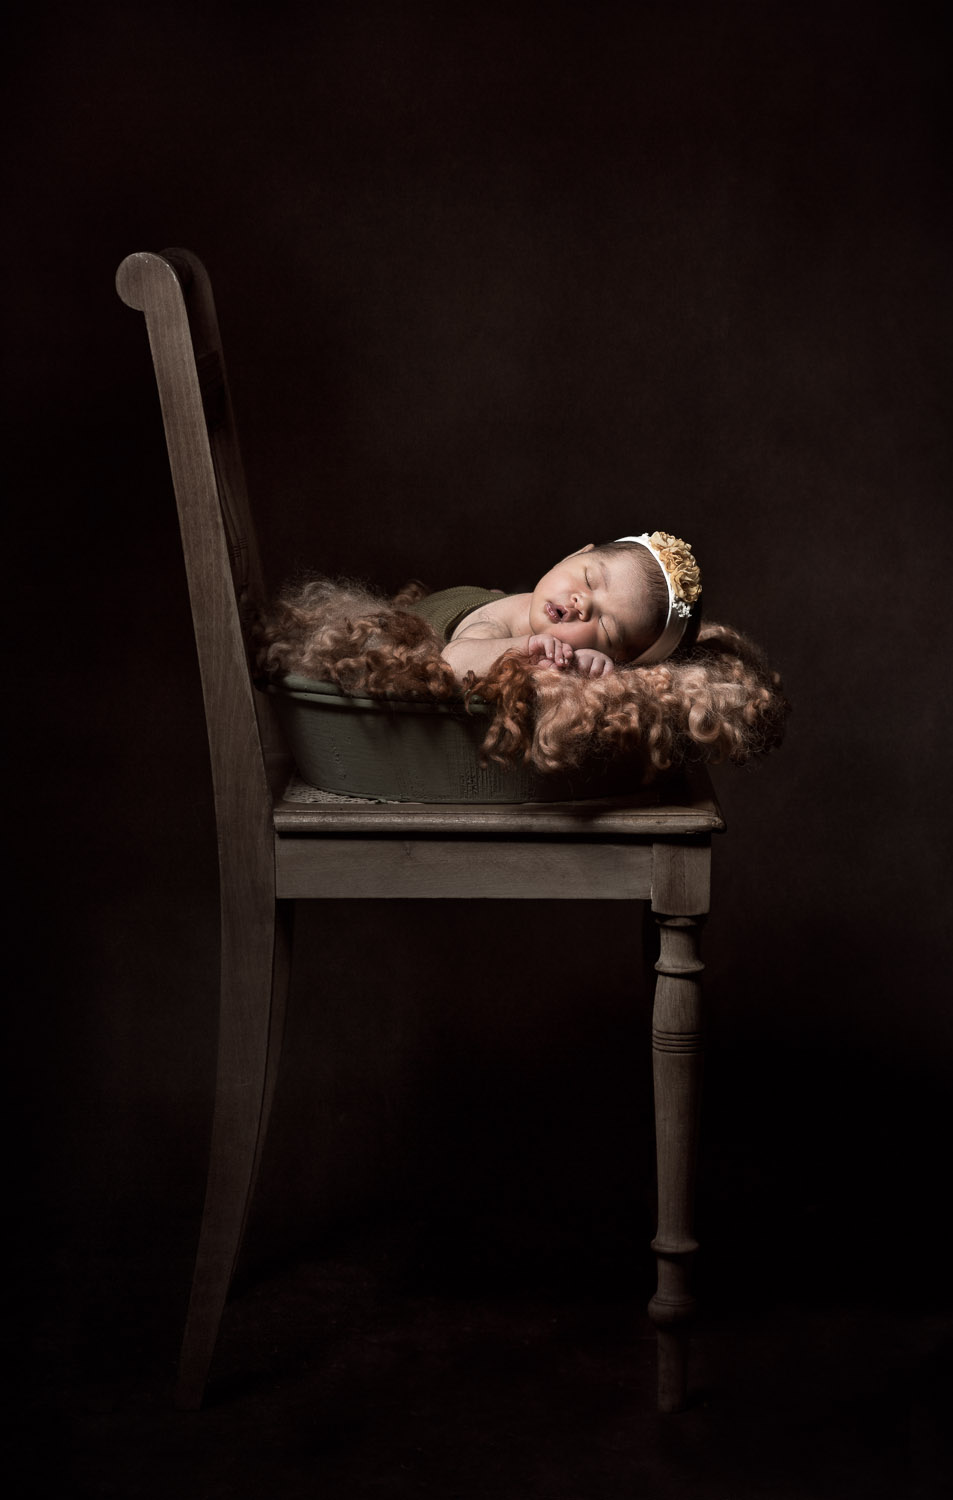 Baby-Newborn-Girl-Chair-Photography-Irene-Chen.jpg